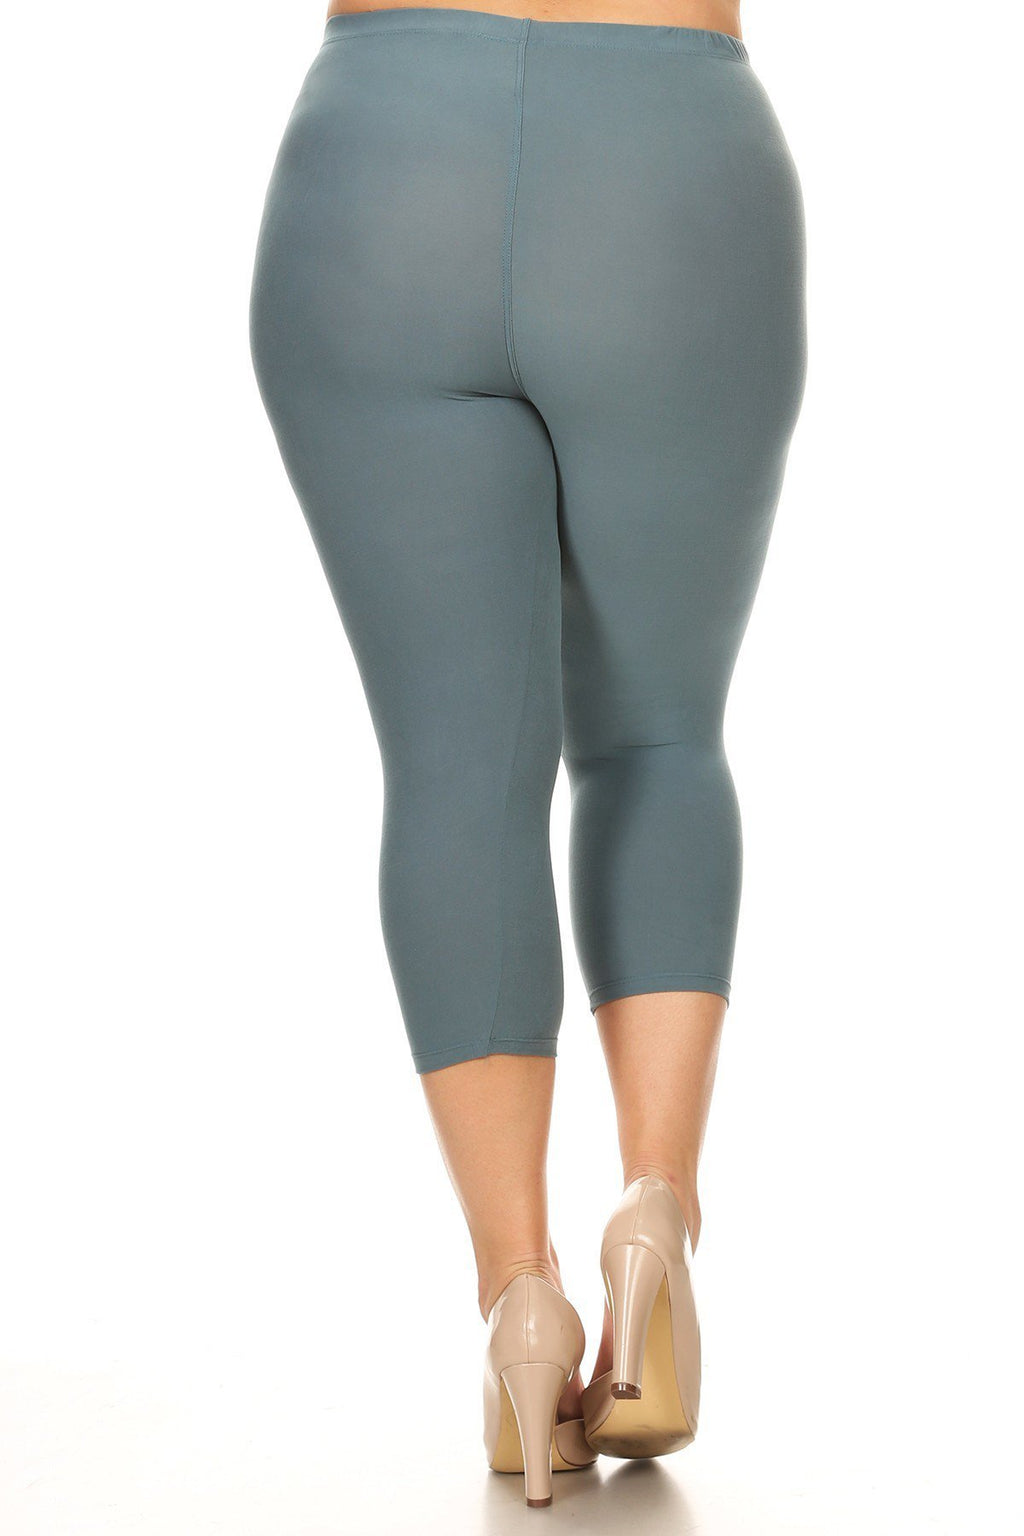 Plus Size Solid High Waisted Knee-length Leggings 001